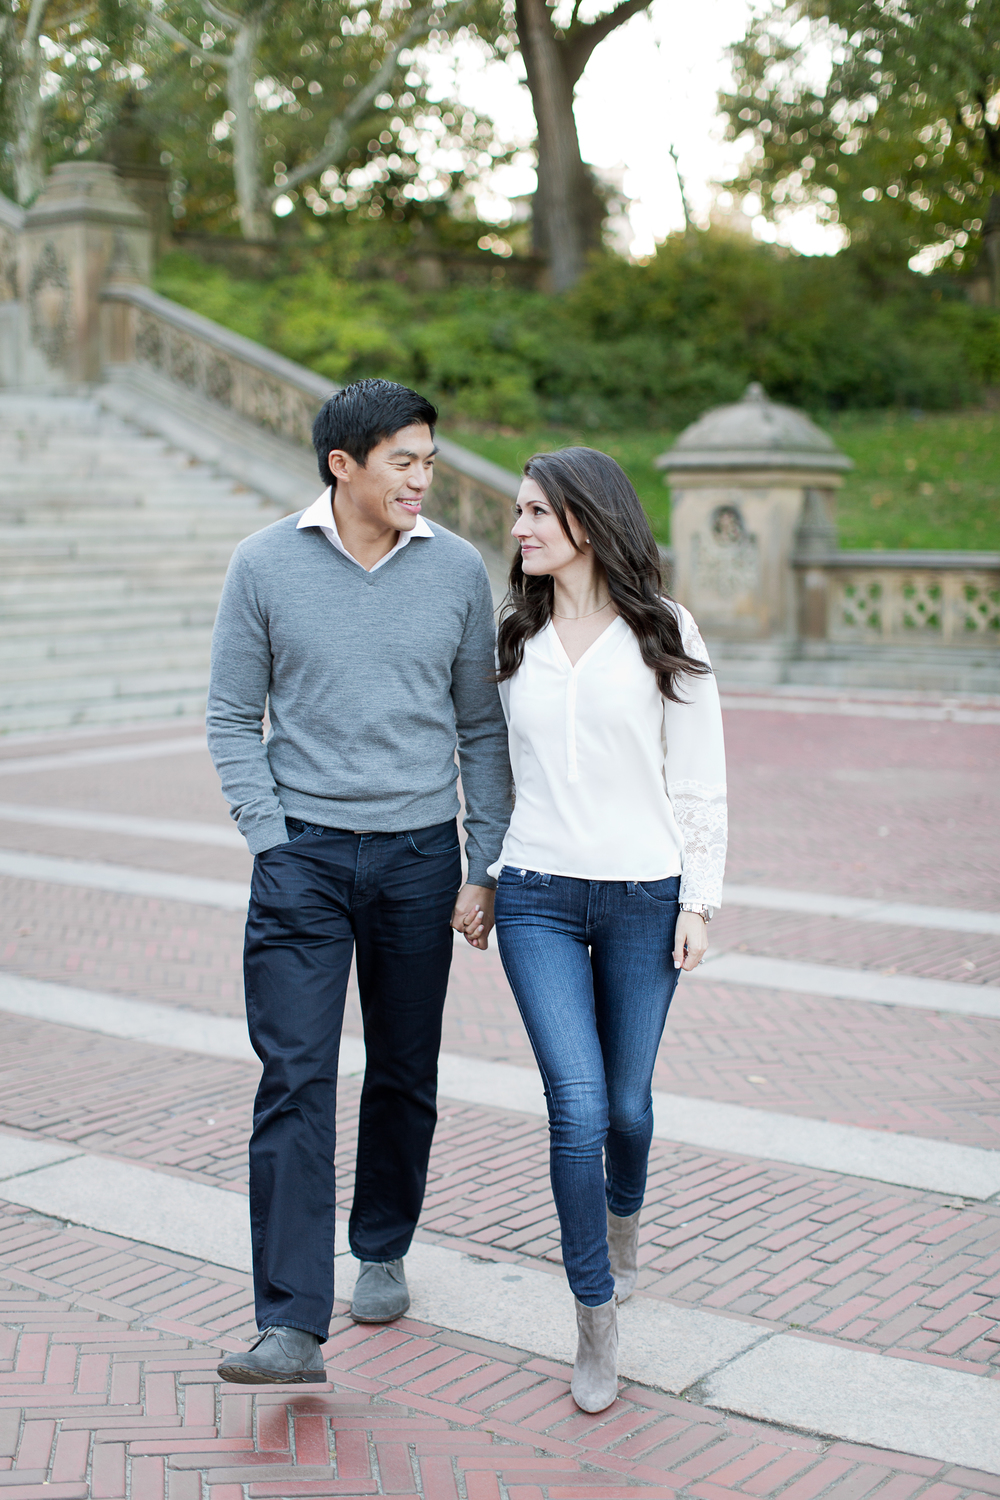 Melissa Kruse Photography - Emily + Kevin Engagement Session-175.jpg